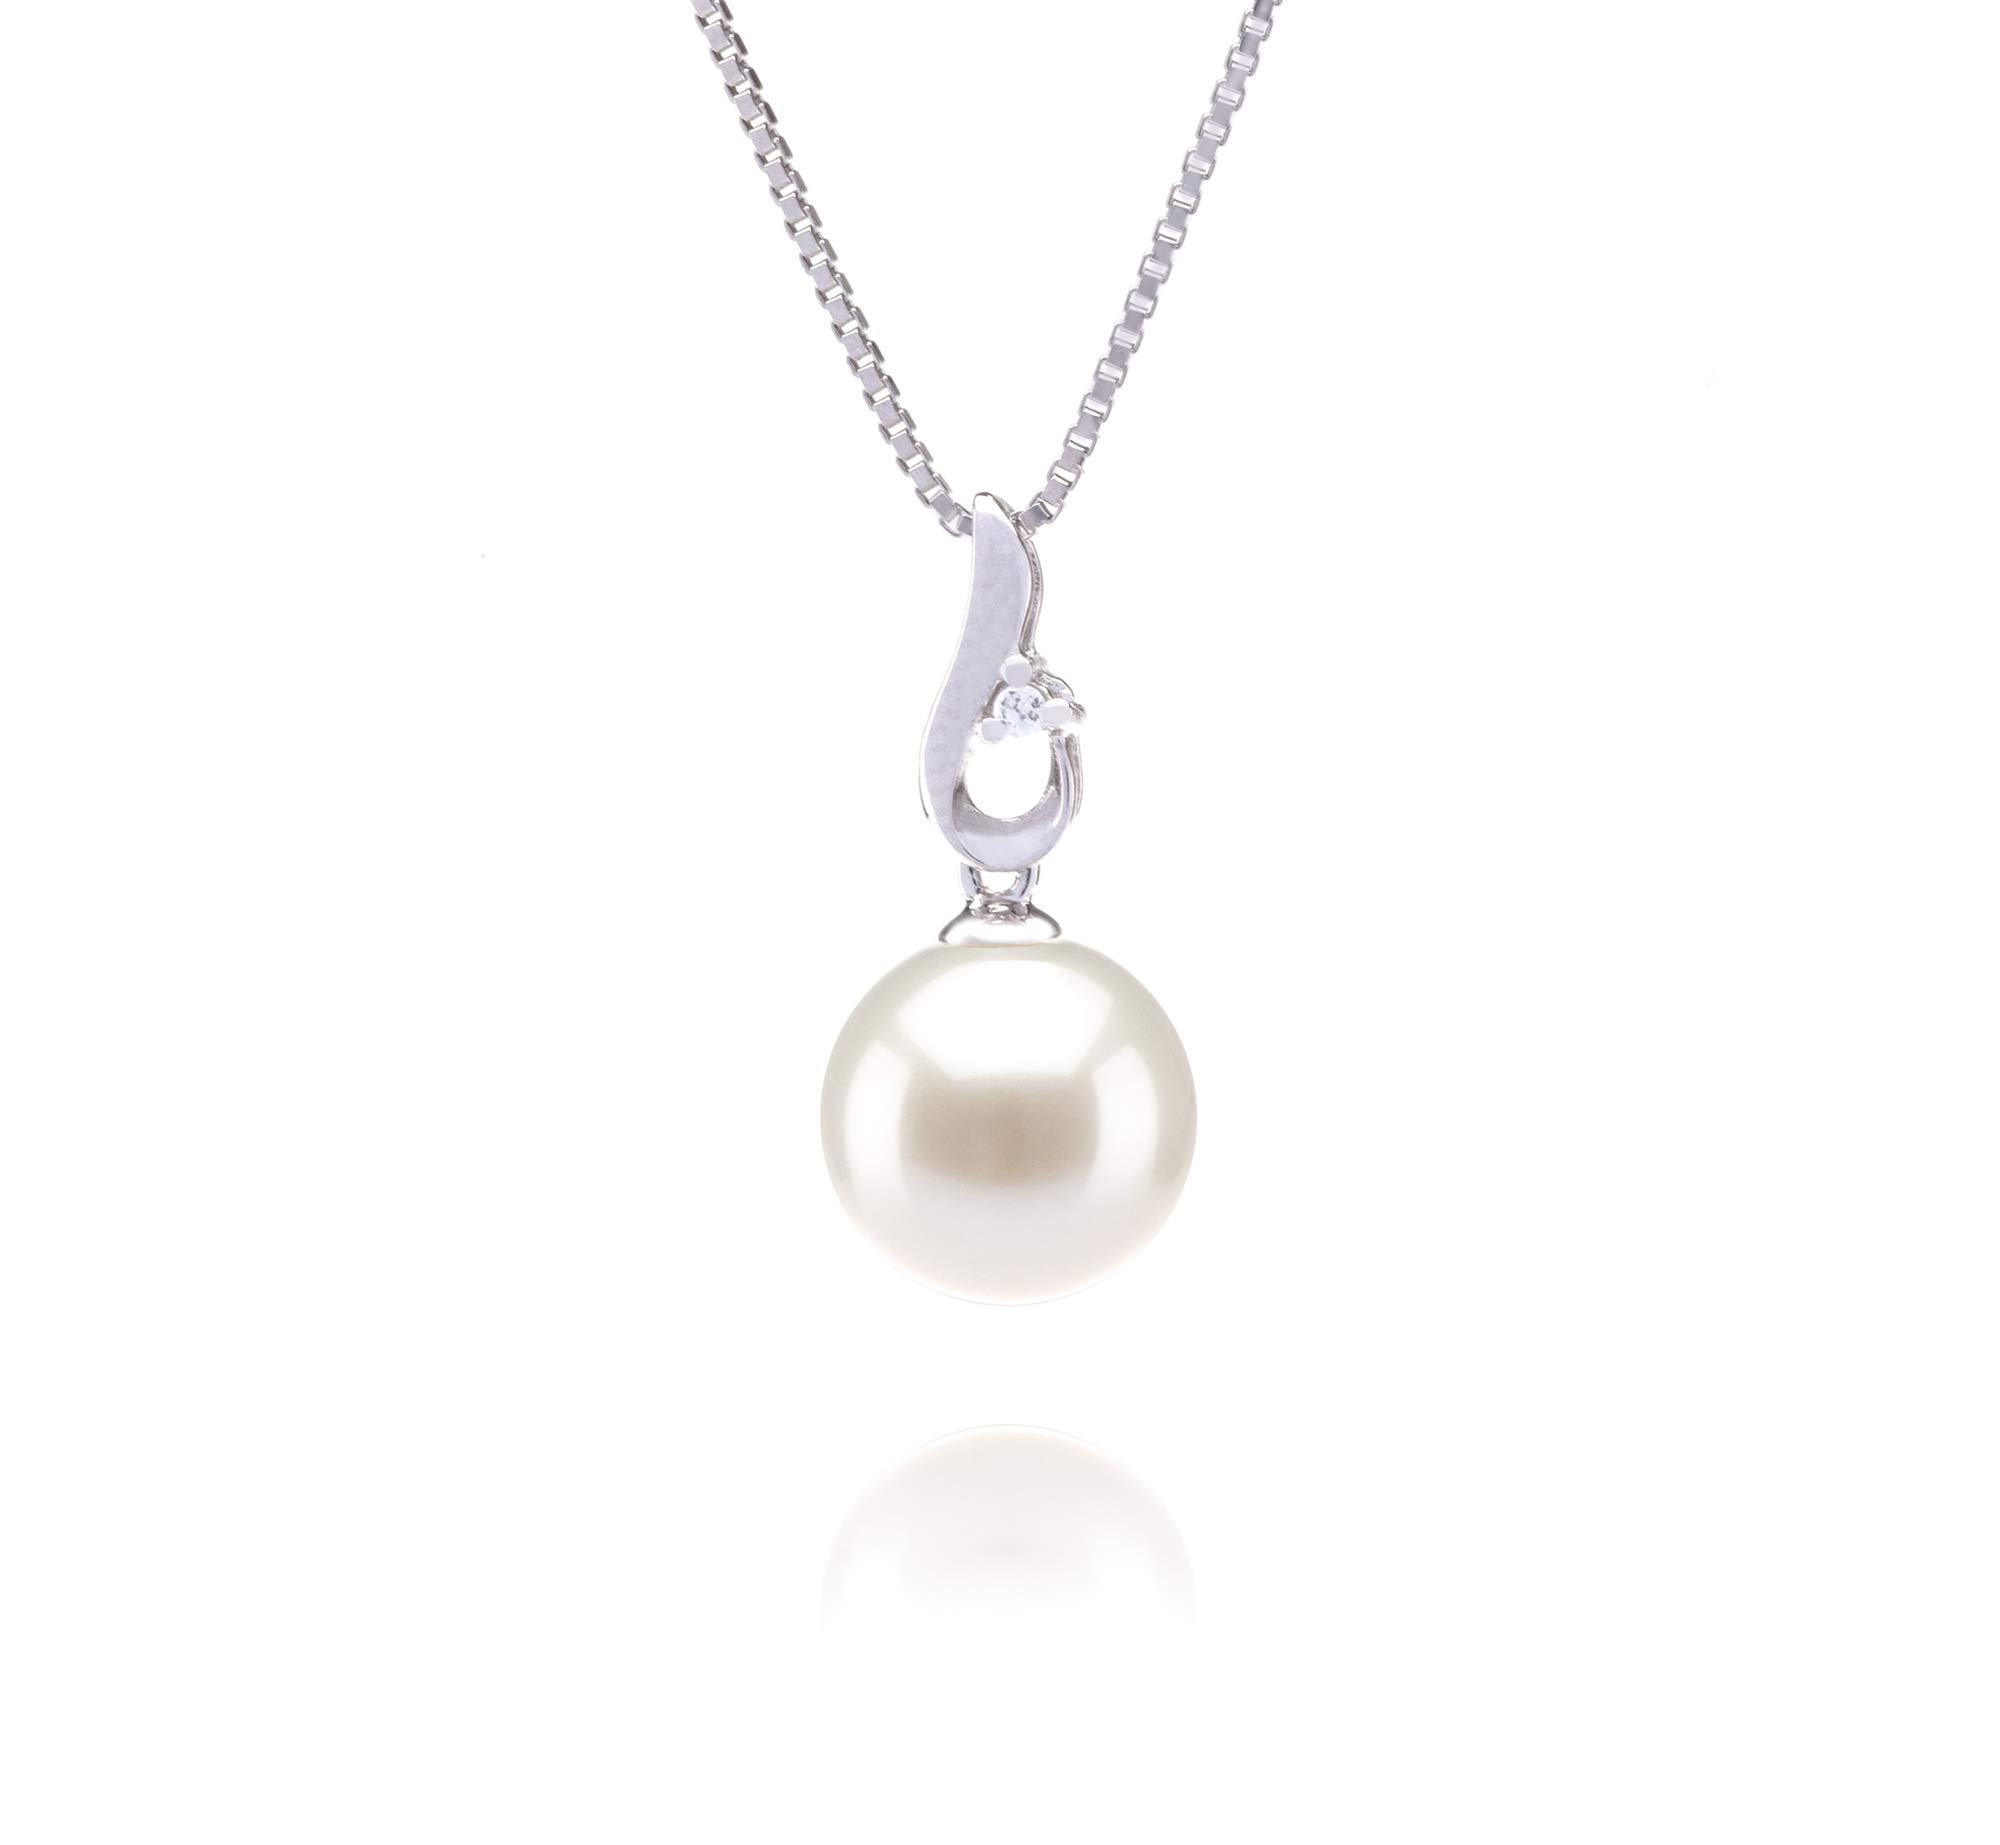 Courtney White 9-10mm AAAA Quality Freshwater 925 Sterling Silver Cultured Pearl Pendant For Women